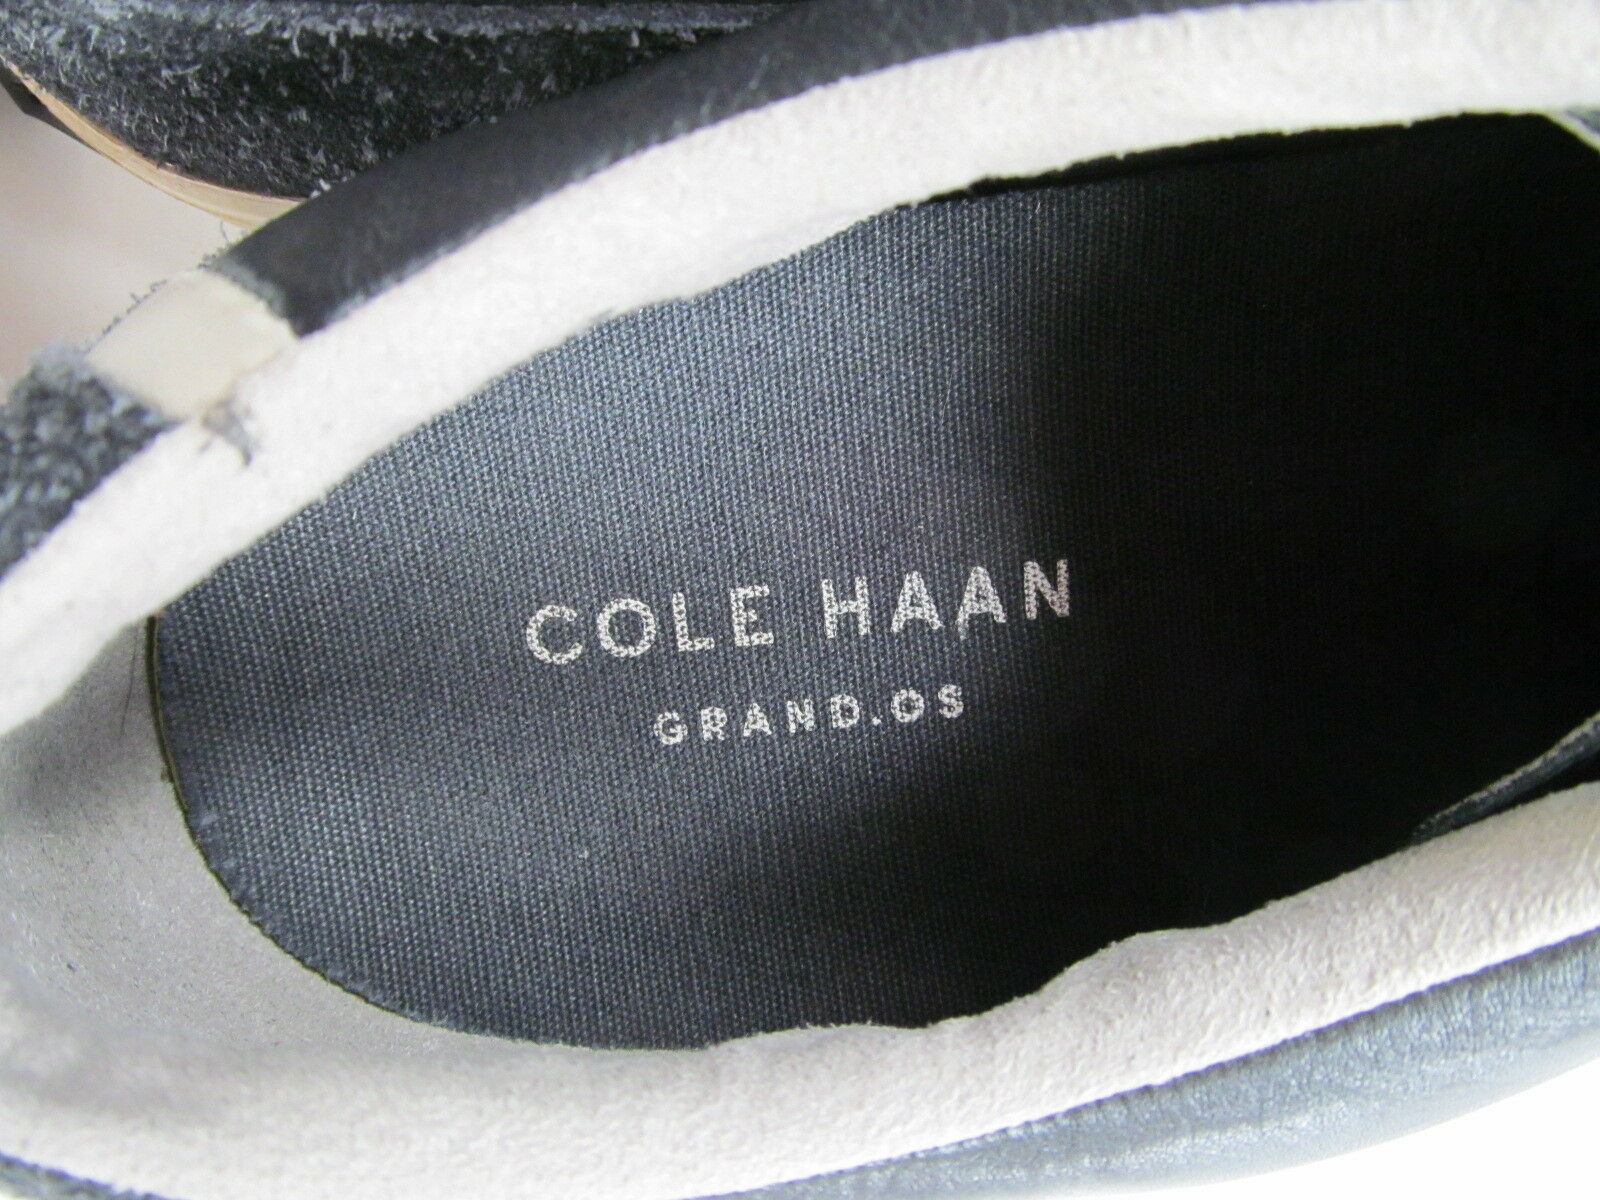 Cole Haan Grand Os Suede & Leather Sneakers shoe mens size 11.5 M